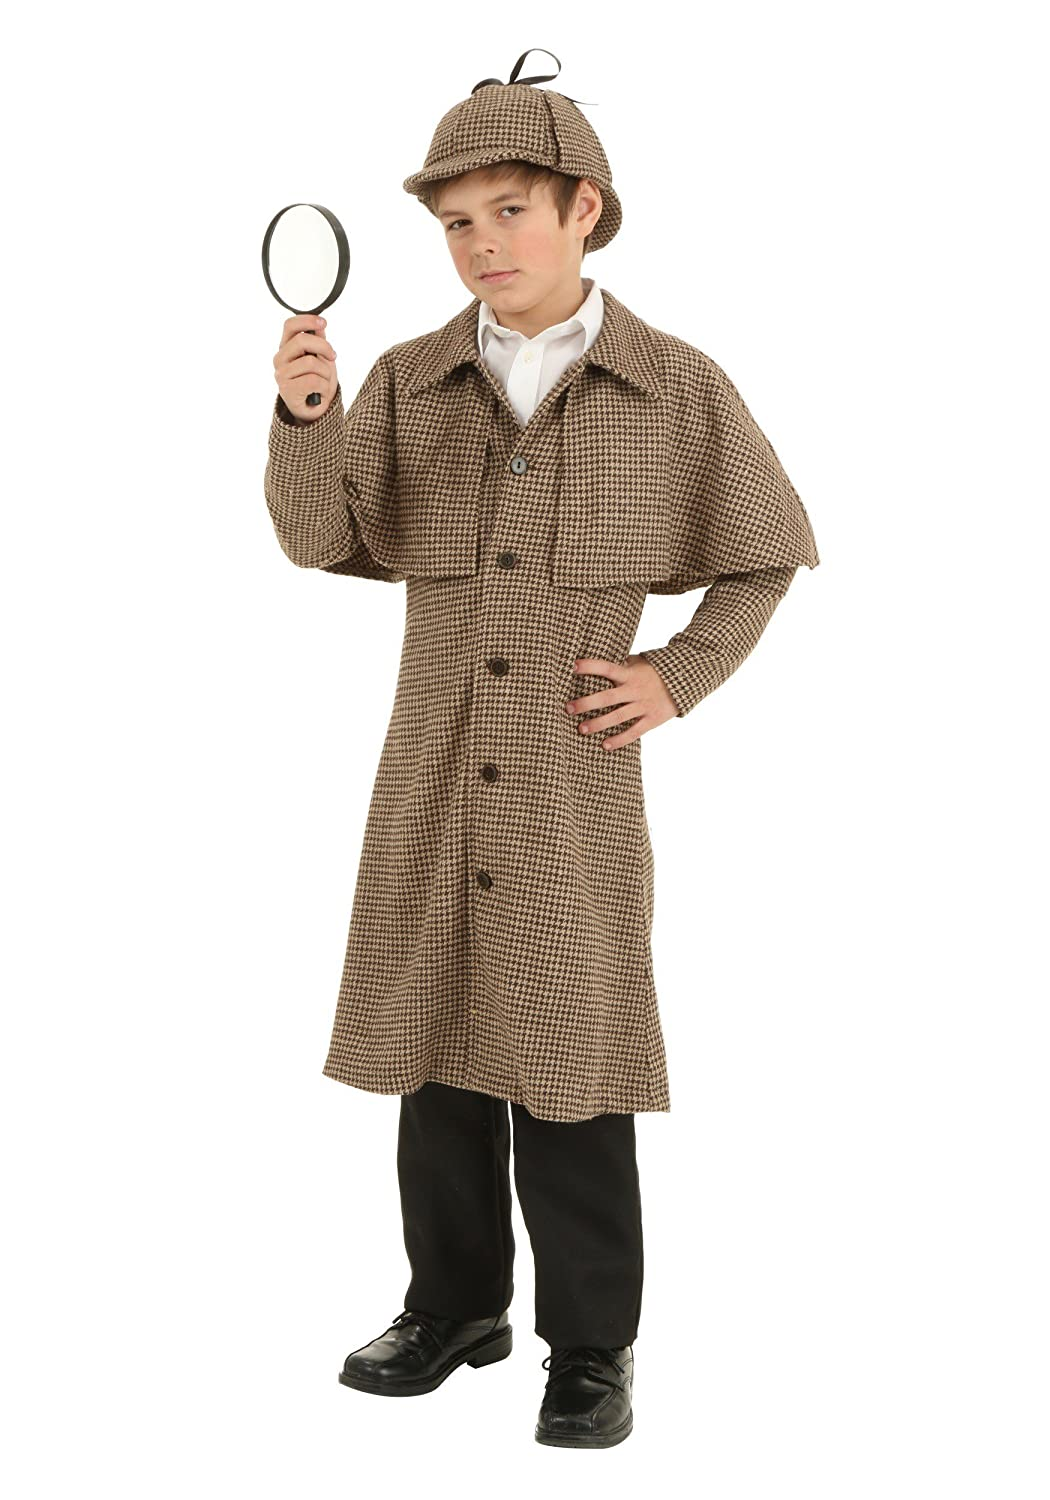 Vintage Style Children's Clothing: Girls, Boys, Baby, Toddler Child Sherlock Holmes Costume $29.99 AT vintagedancer.com